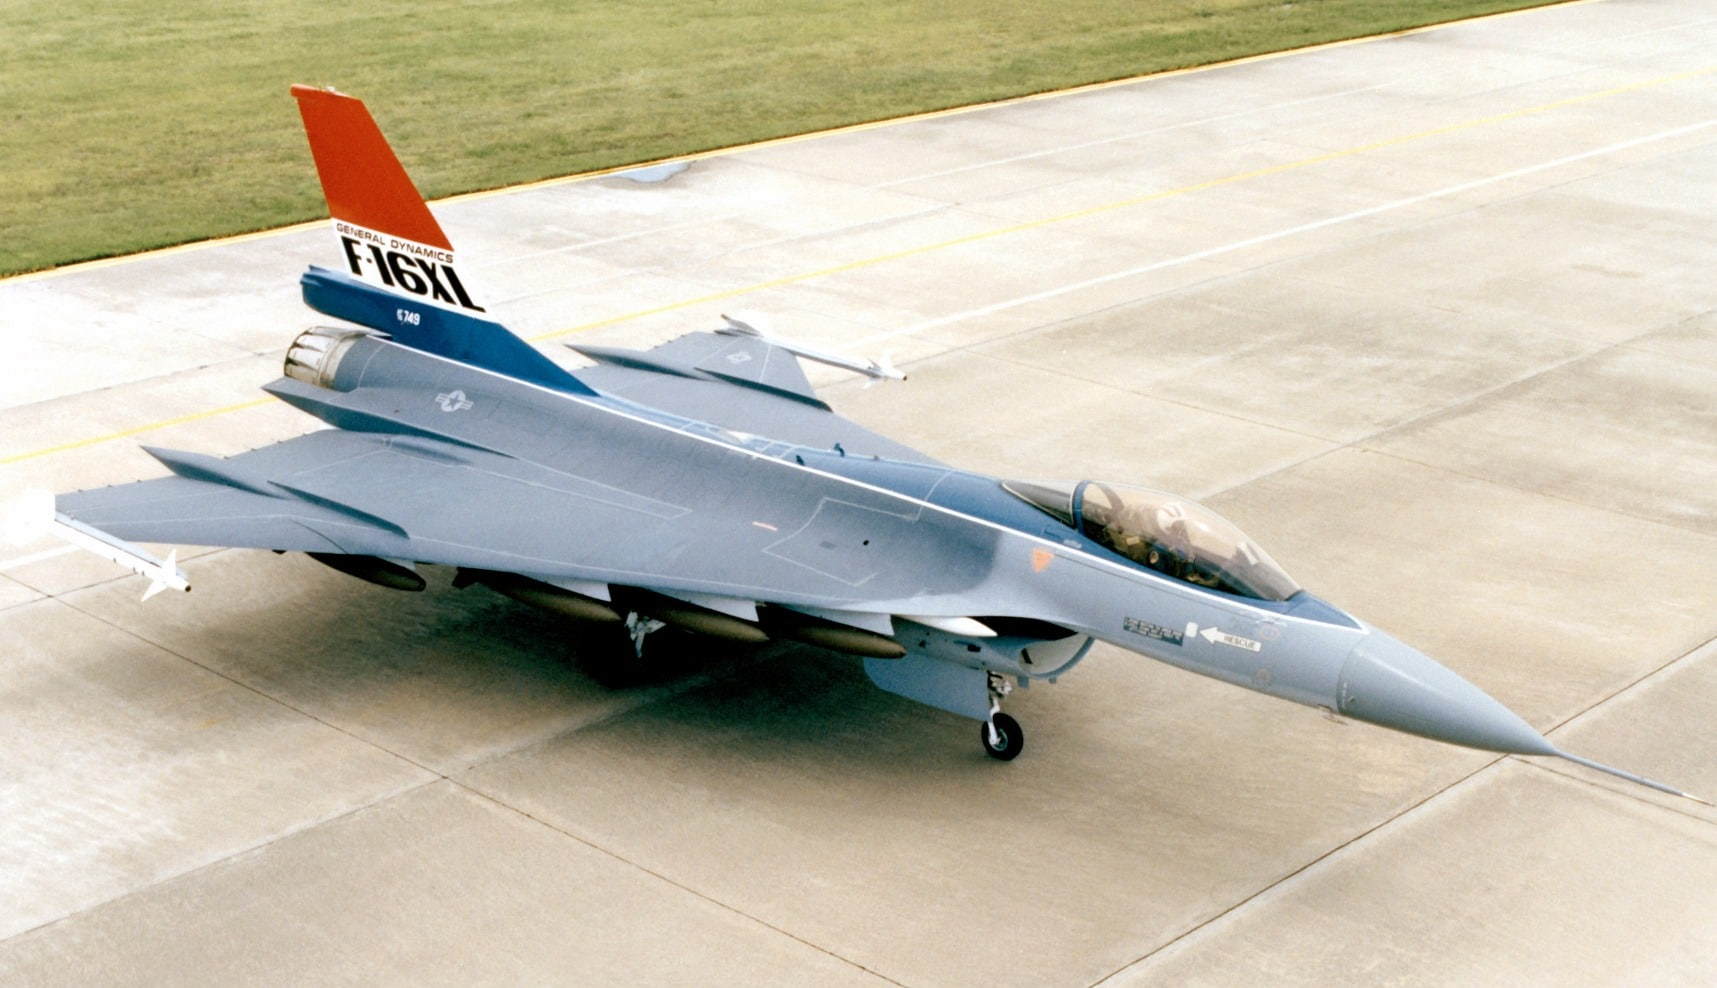 F-16XL_parked_high_angle_view.jpg